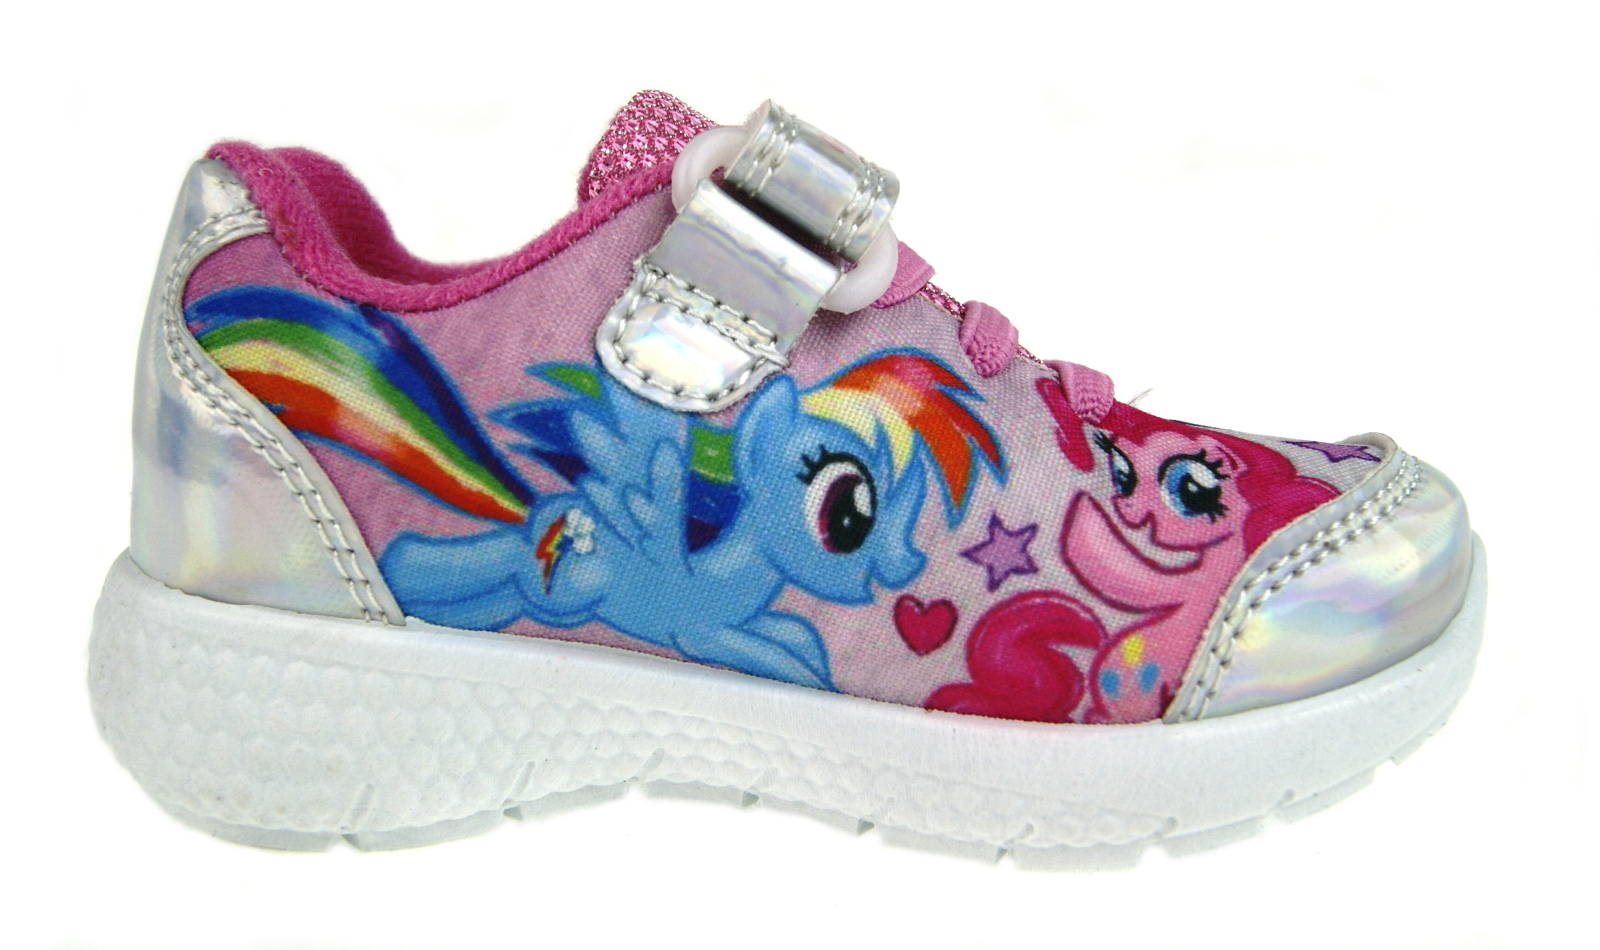 Girls Kids Slip On Childrens Glittery Trainers Sports Pump Flat Running Shoes UK